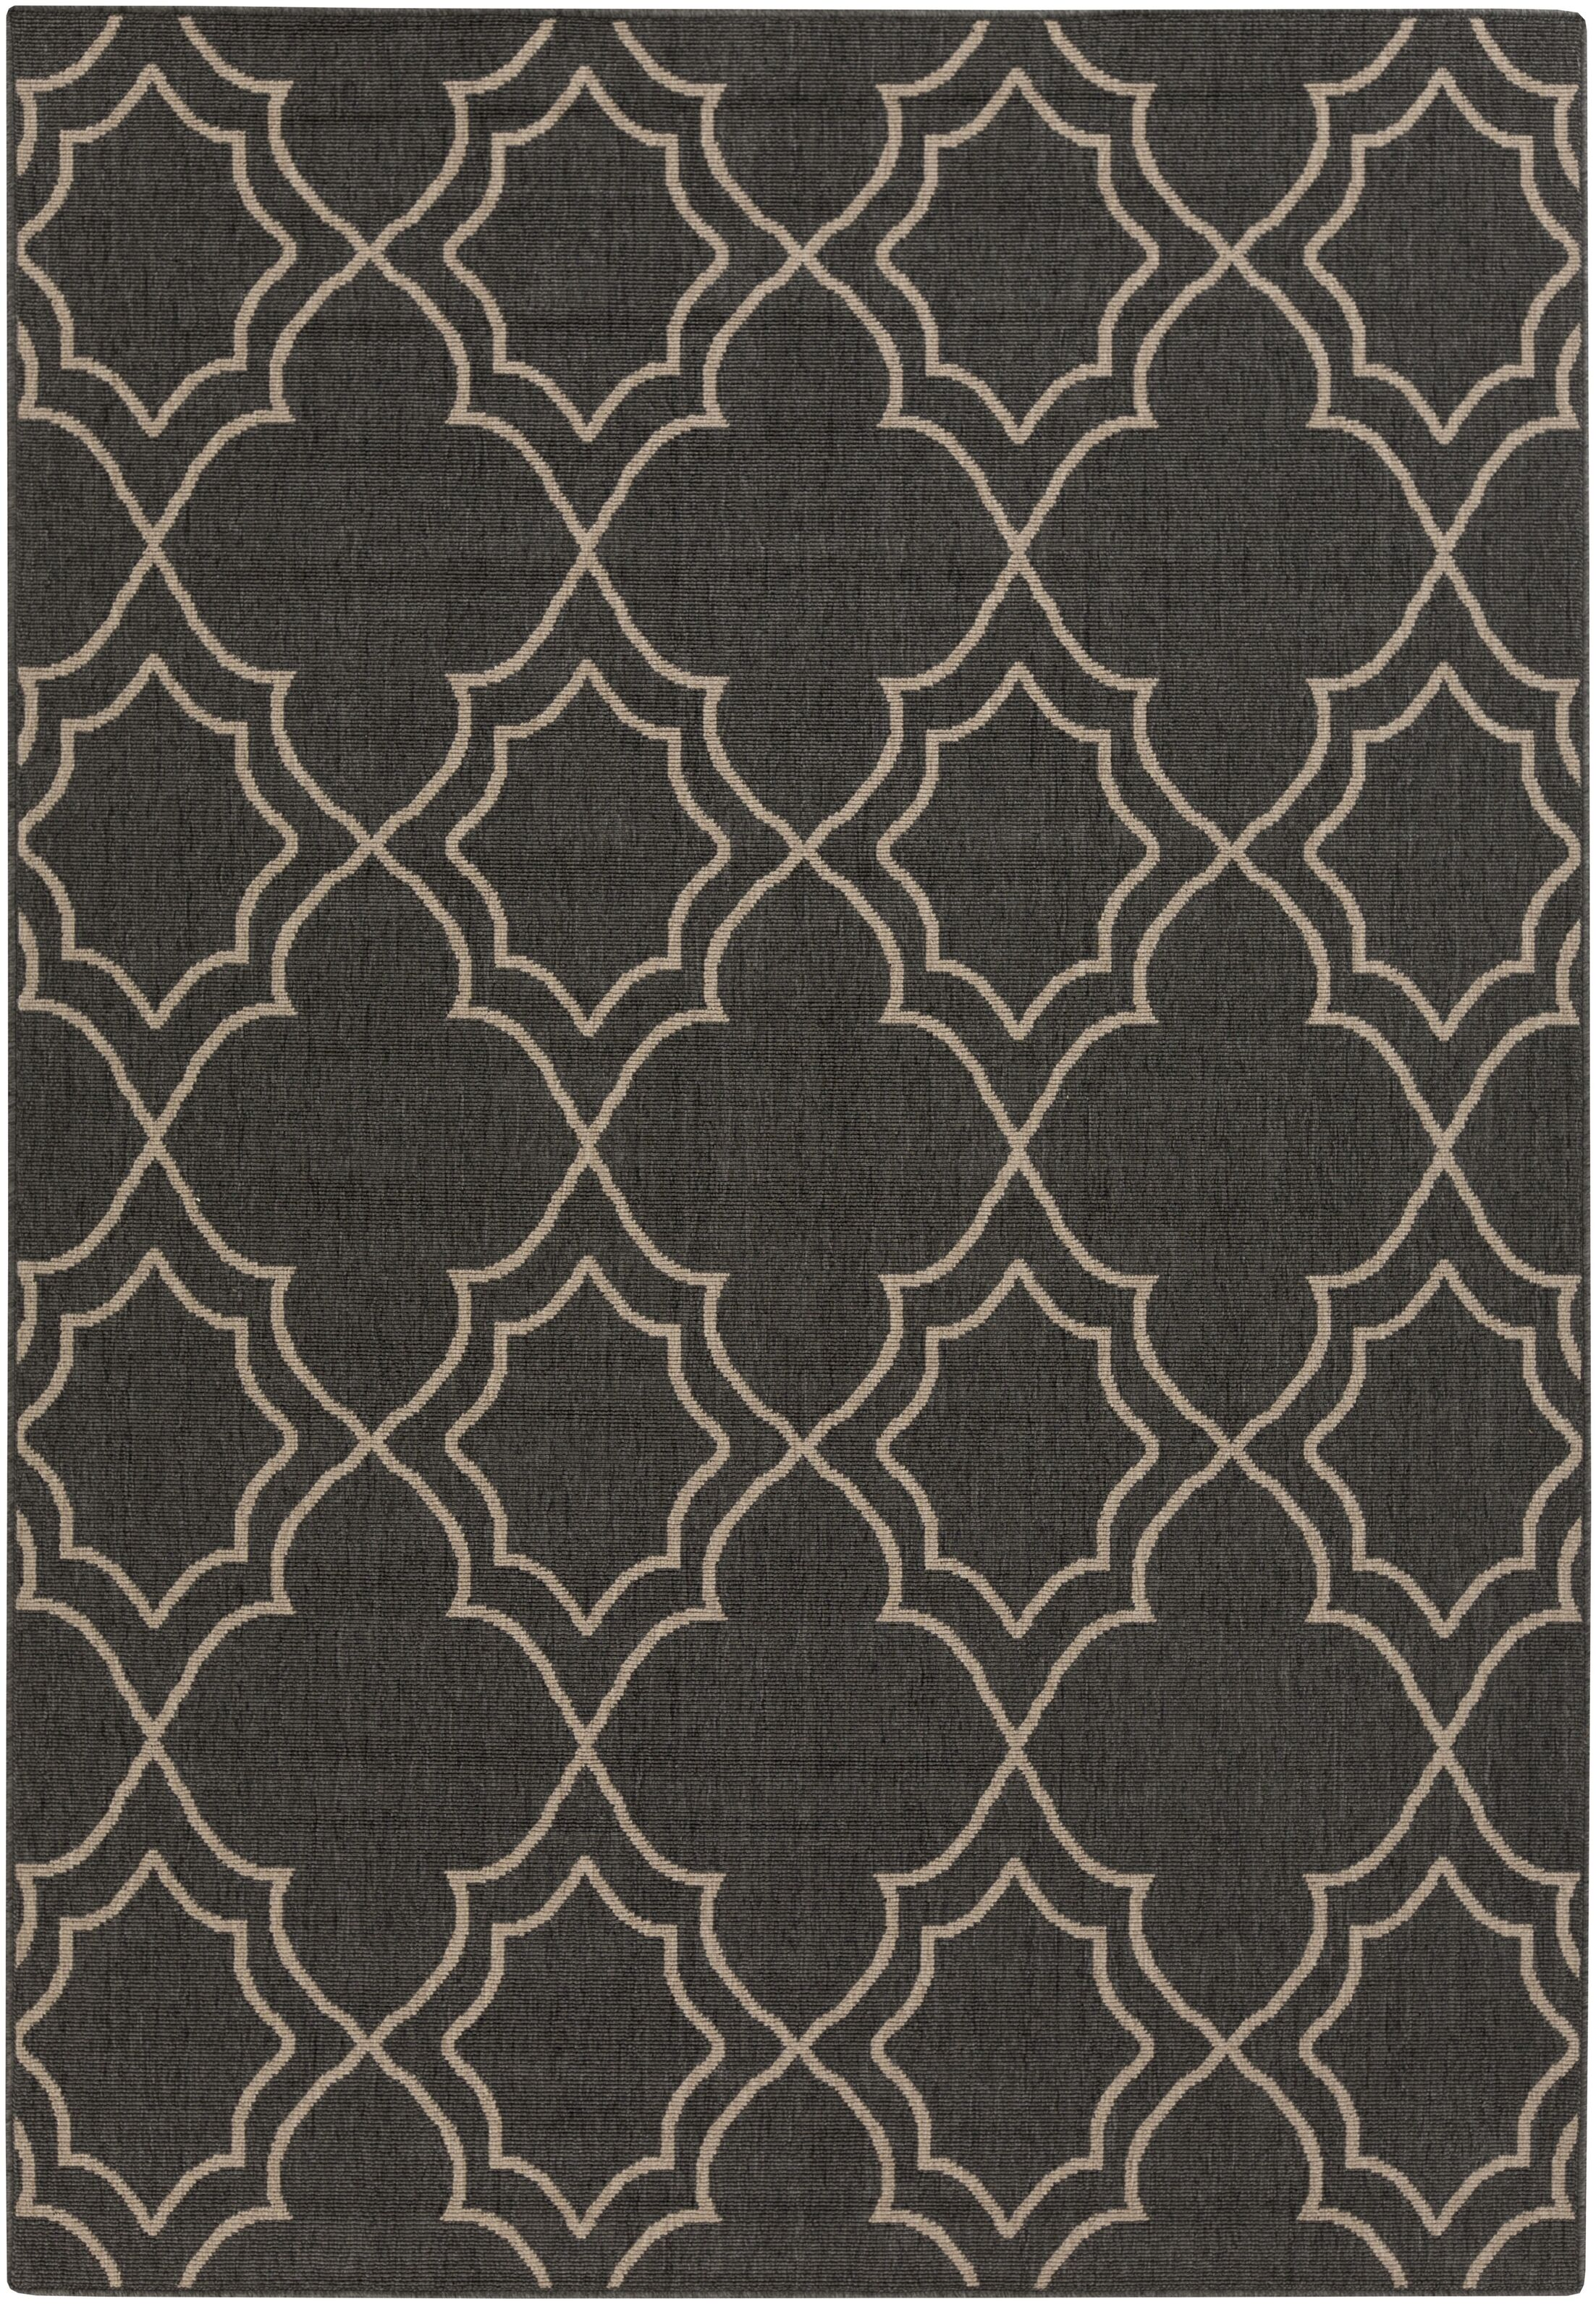 Amato Taupe Indoor/Outdoor Area Rug Rug Size: Rectangle 8'9